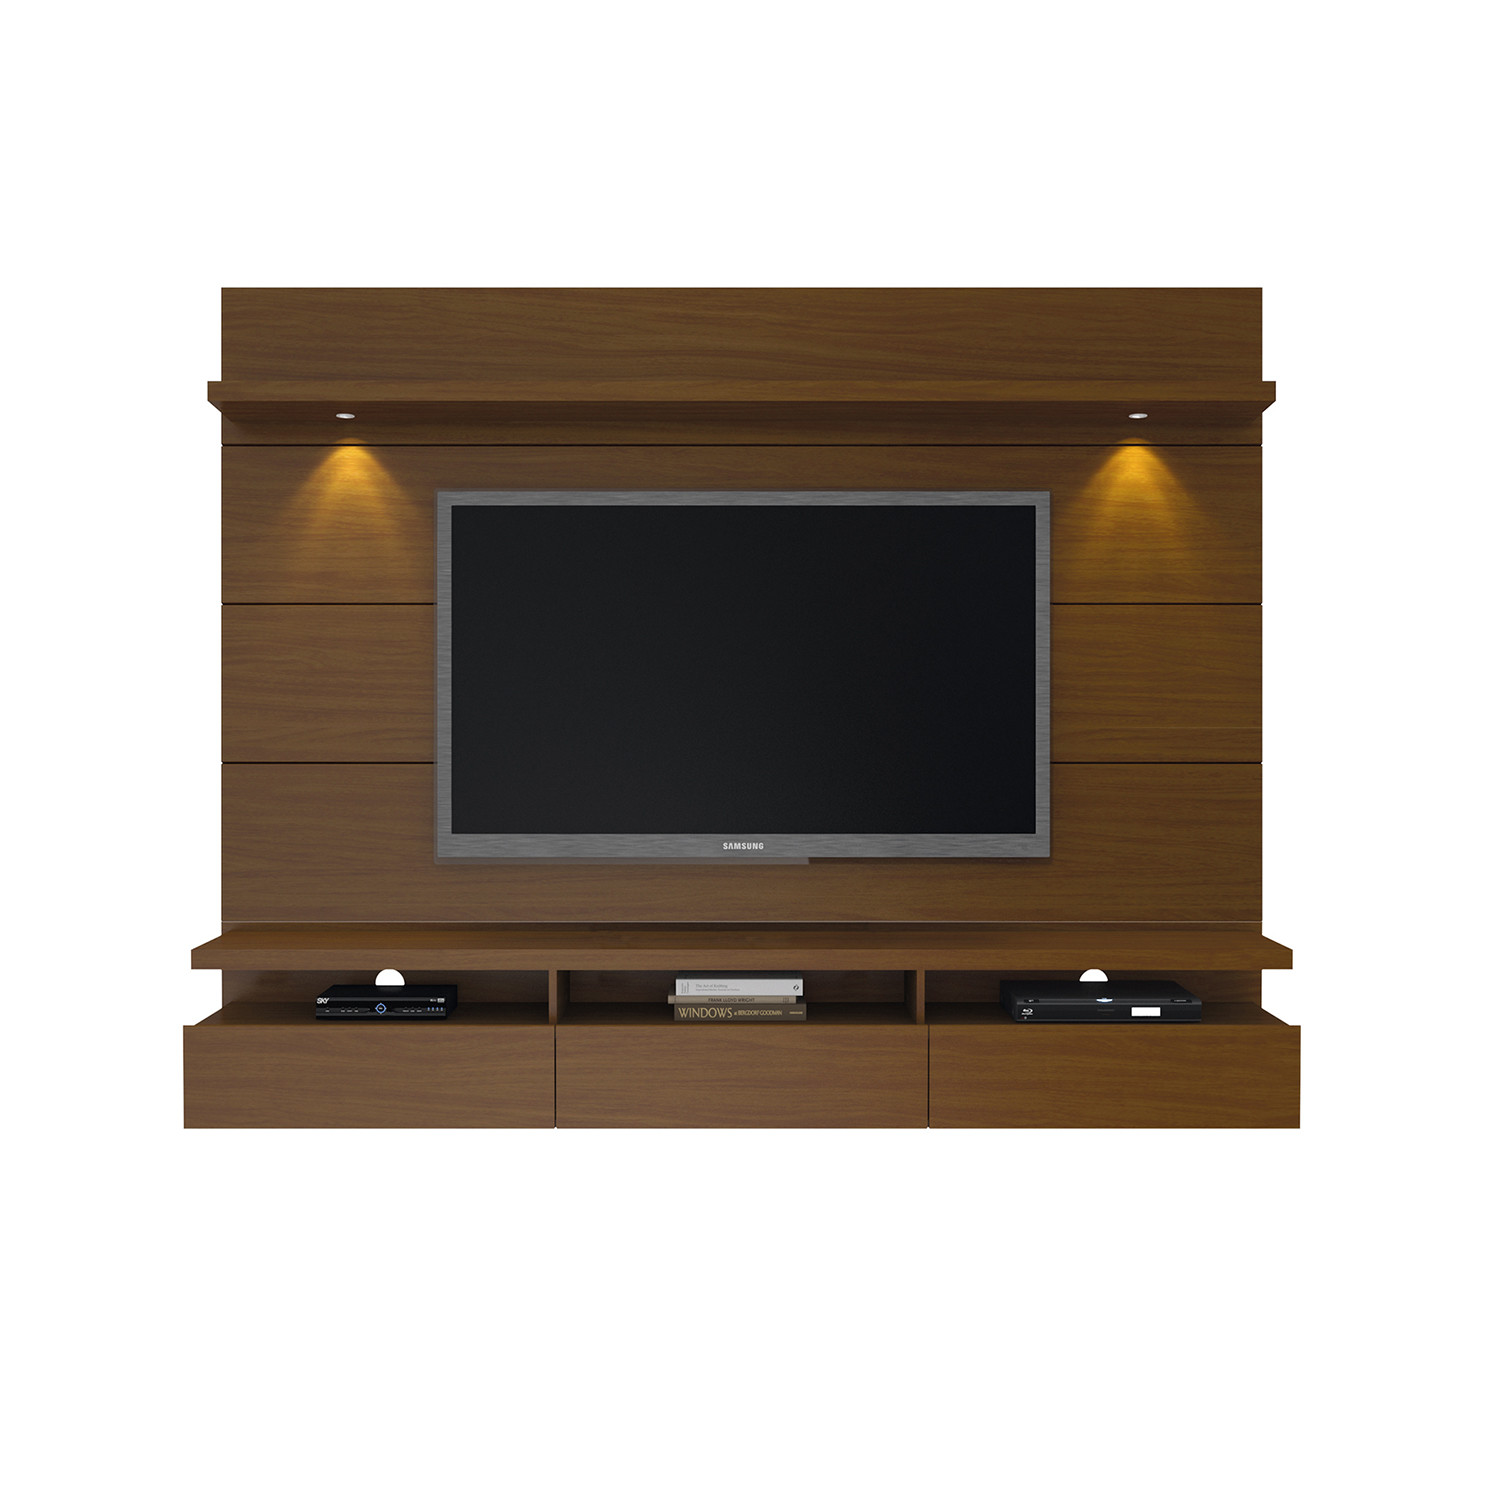 50 Images Of Modern Floating Wall Theater Entertainment: Cabrini 2.2 Floating Wall Theater Entertainment Center